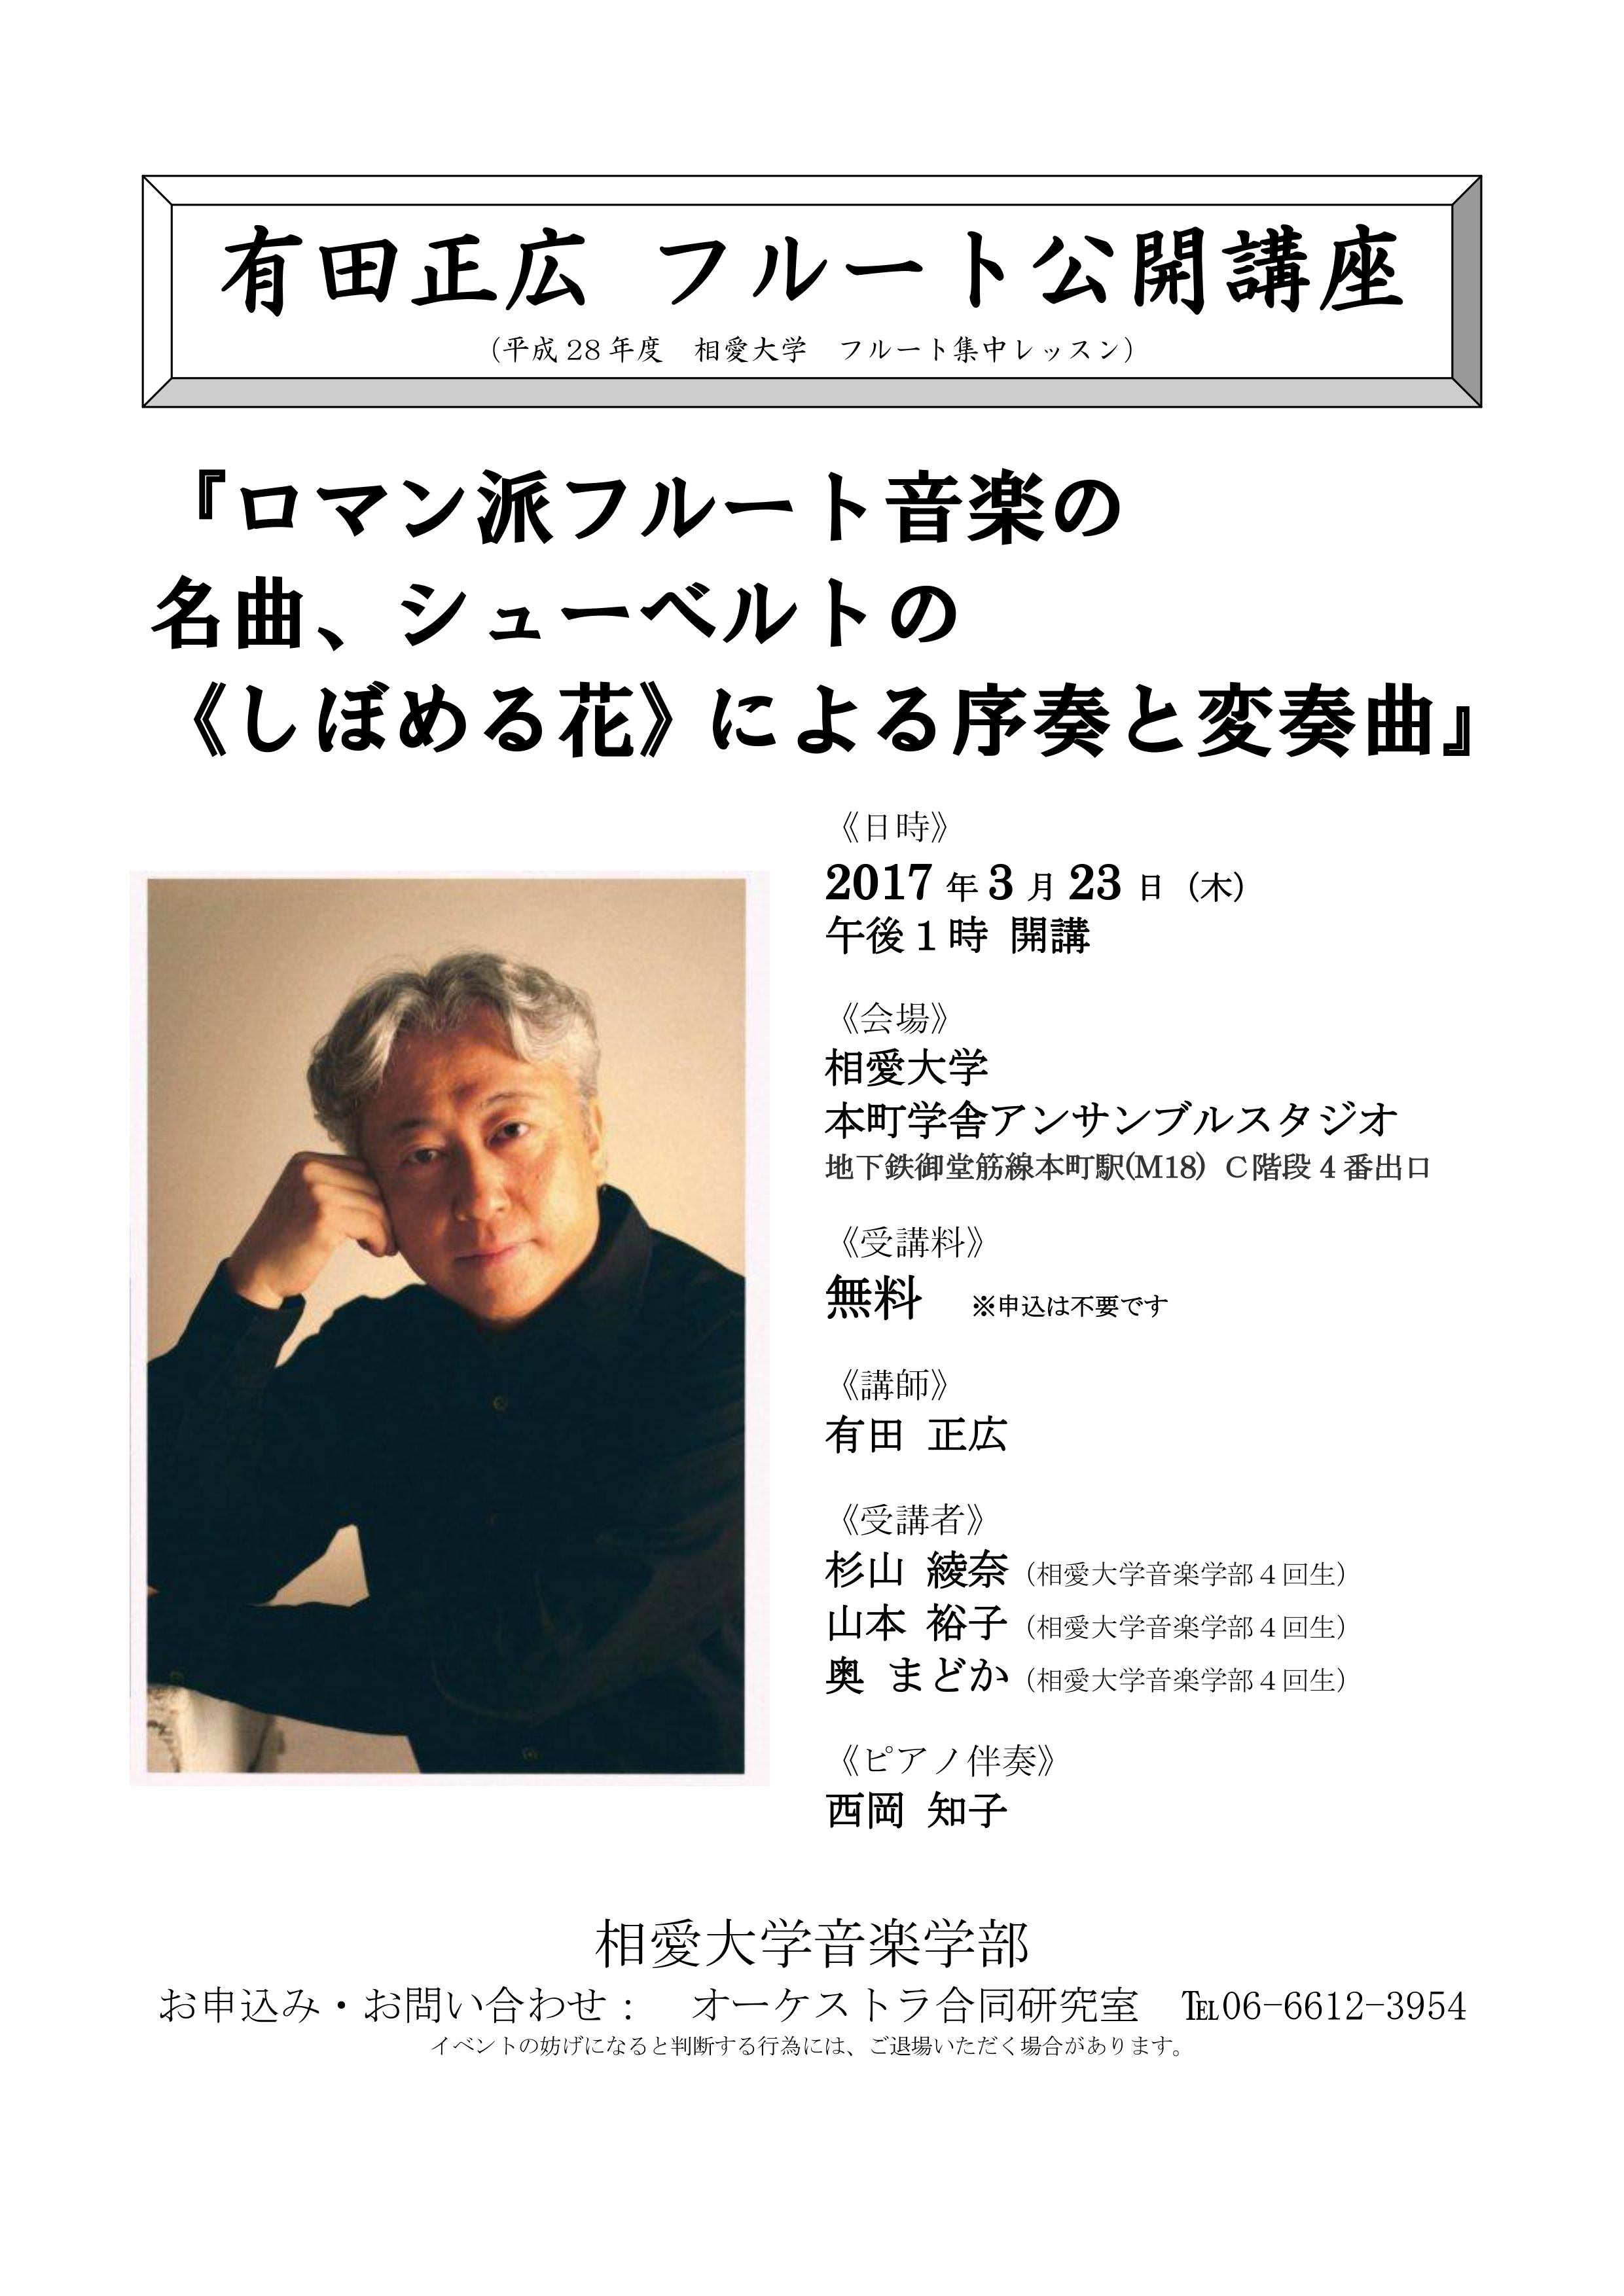 http://www.soai.ac.jp/information/lecture/20170323_flut-openlecture2.jpg